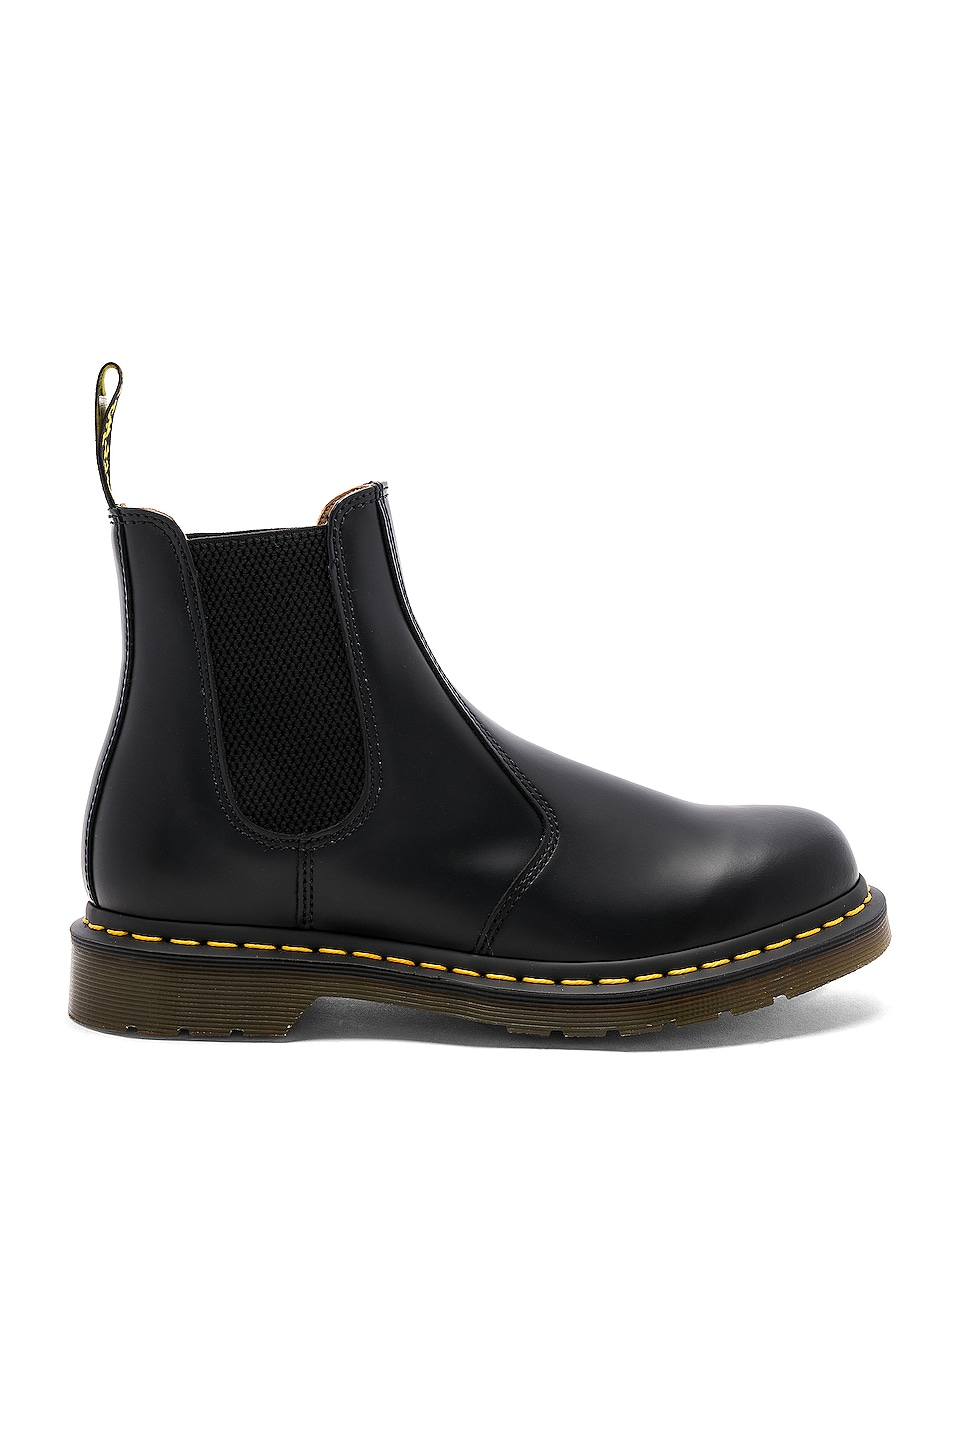 Dr. Martens 2976 Yellow Stitch Boot in Black